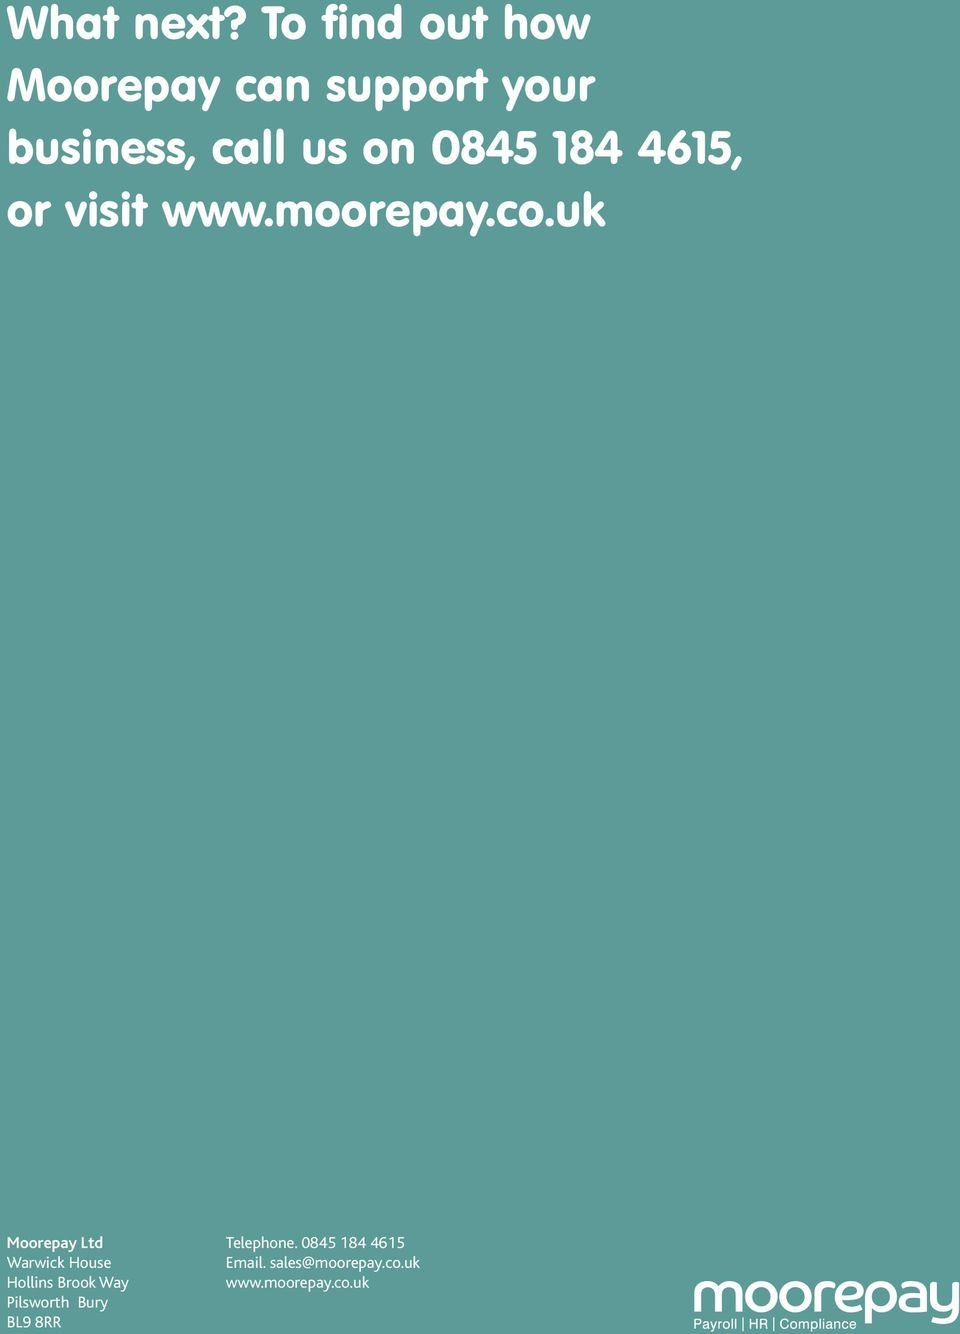 0845 184 4615, or visit www.moorepay.co.